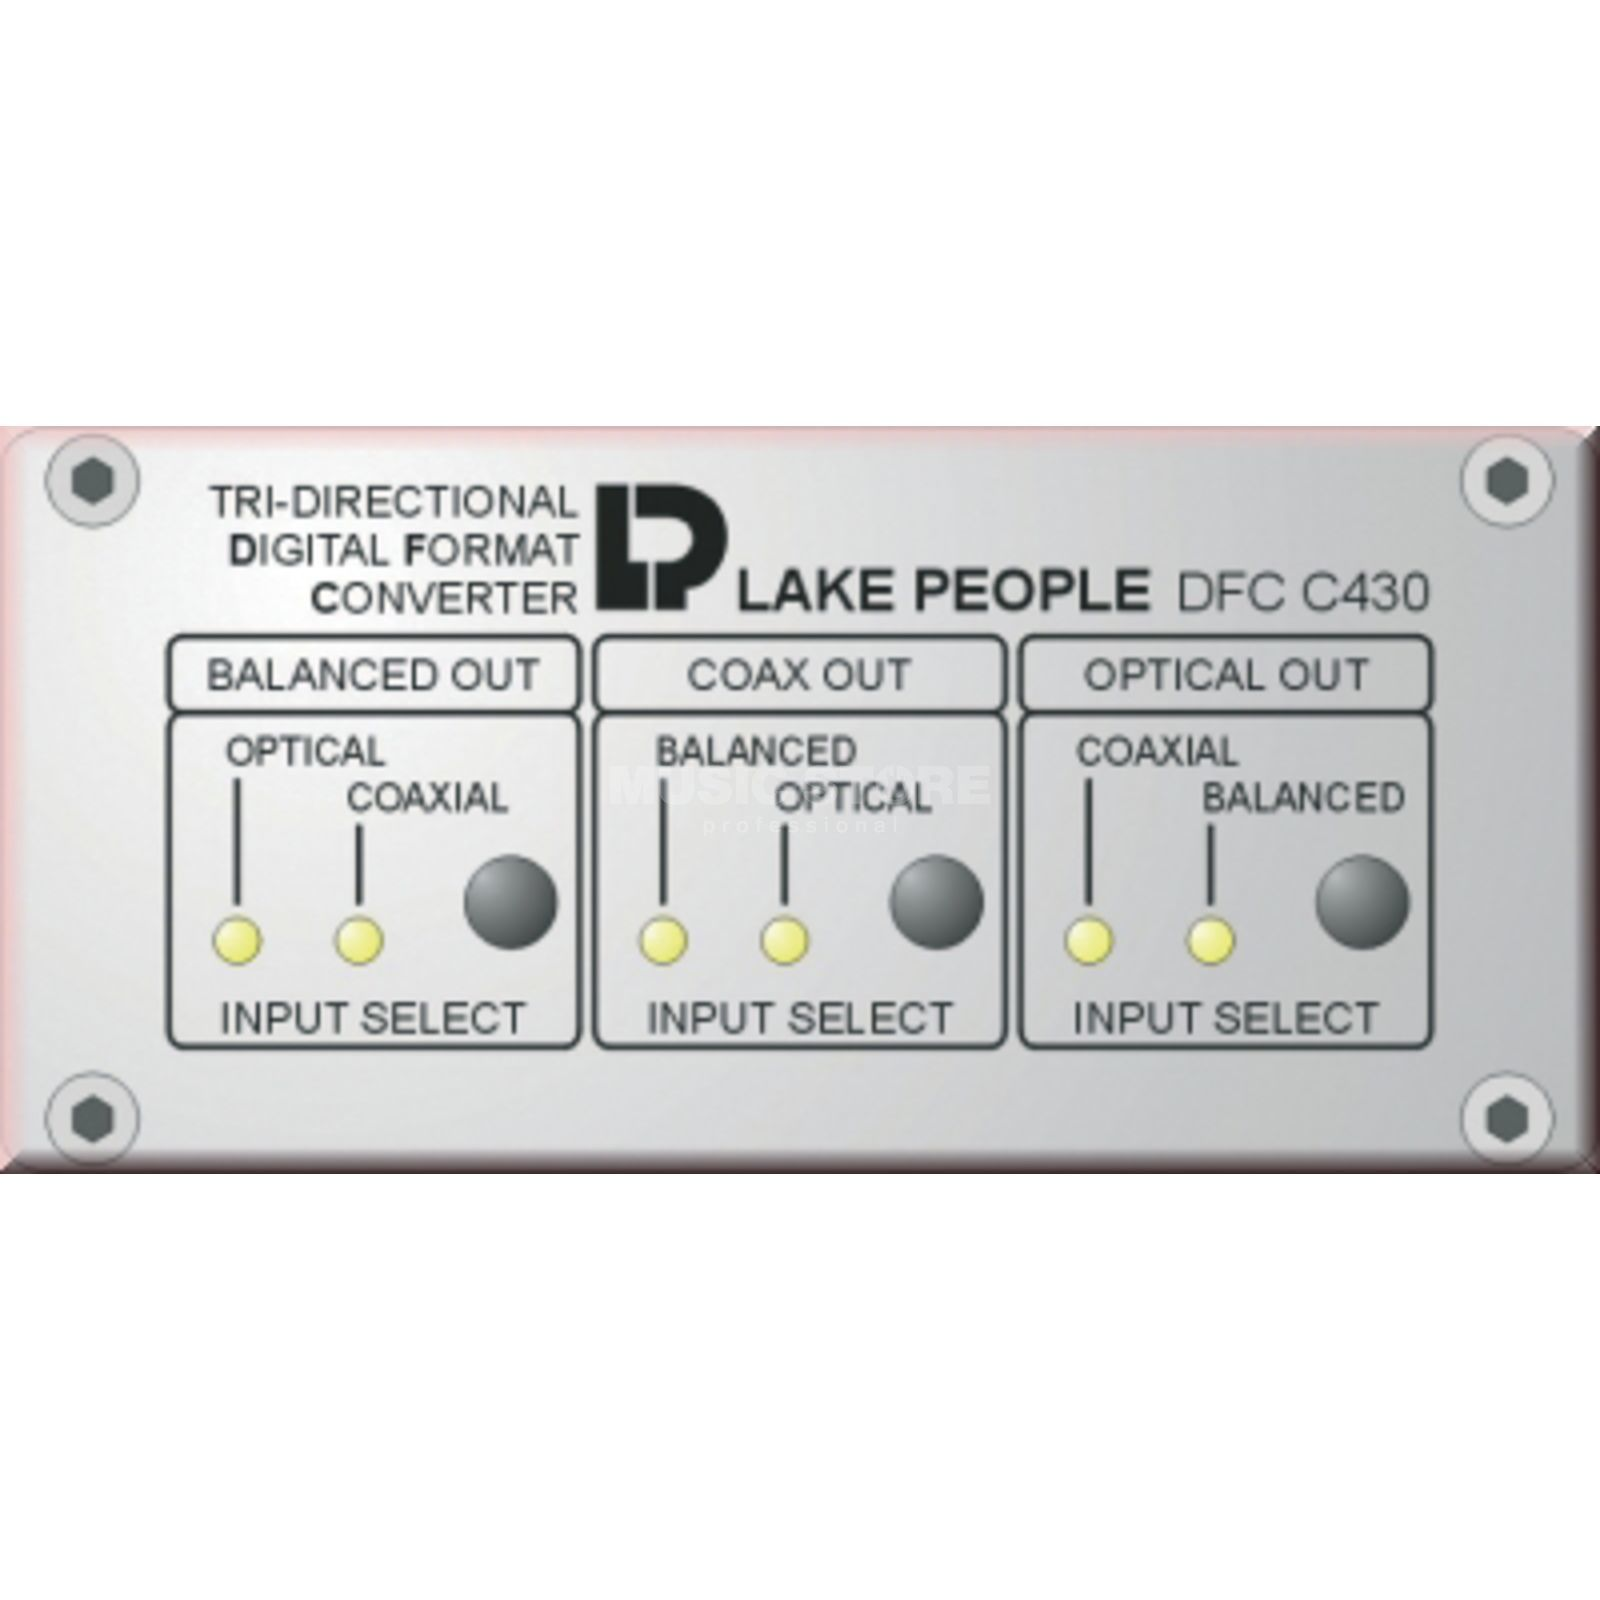 Lake People DFC C430 Digitaler Format Converter Produktbild